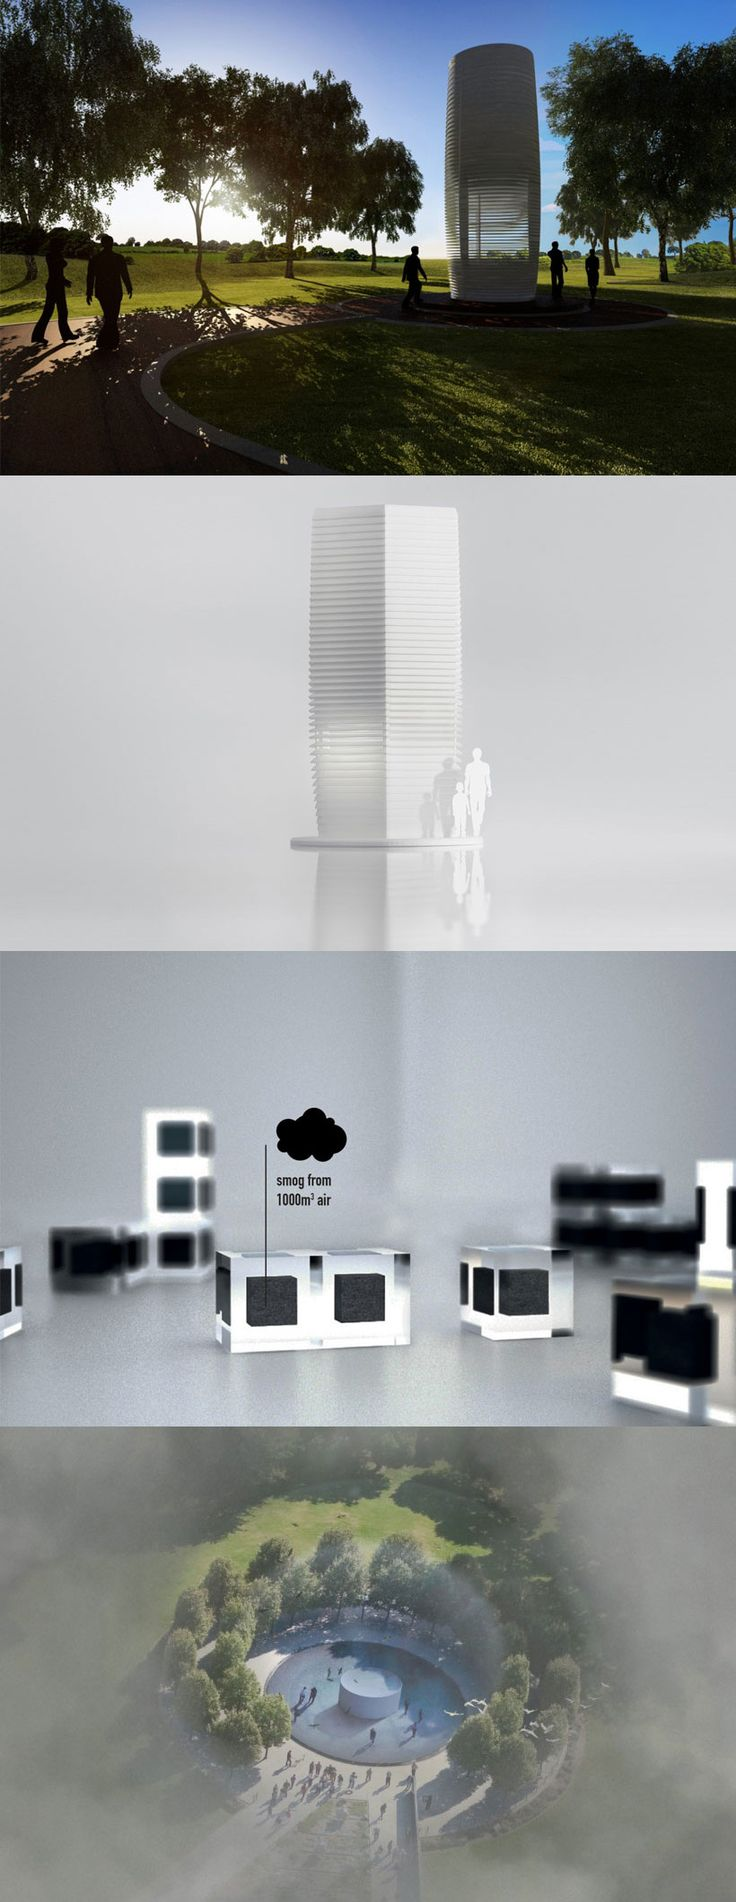 "Il più grande purificatore d'aria ""green"" al mondo: Smog Free Tower  Let's build the world's largest air-purifier!"